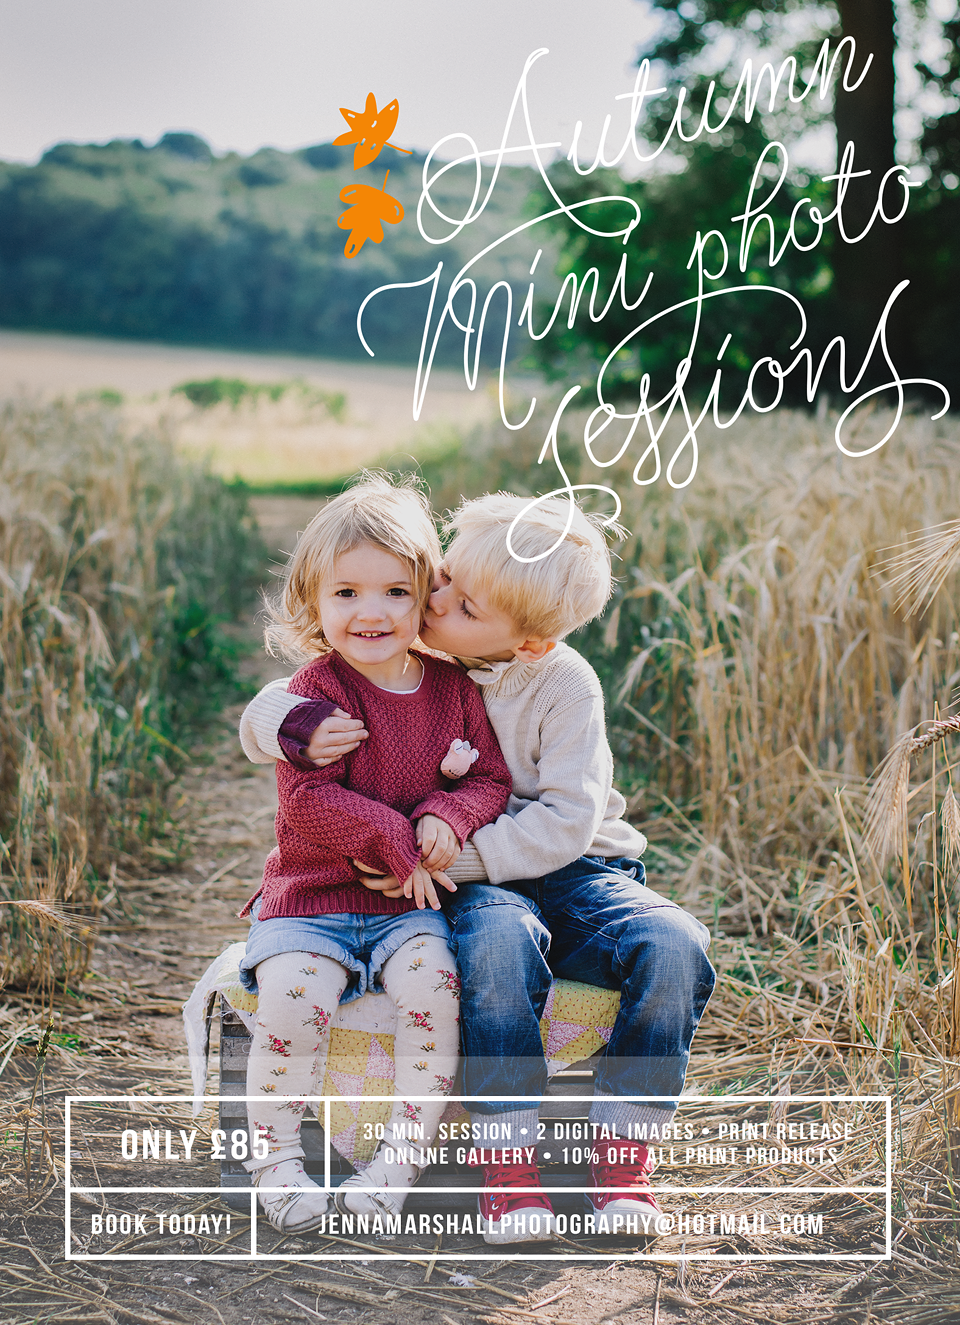 Autumn-family-session-jenna-marshall-photography